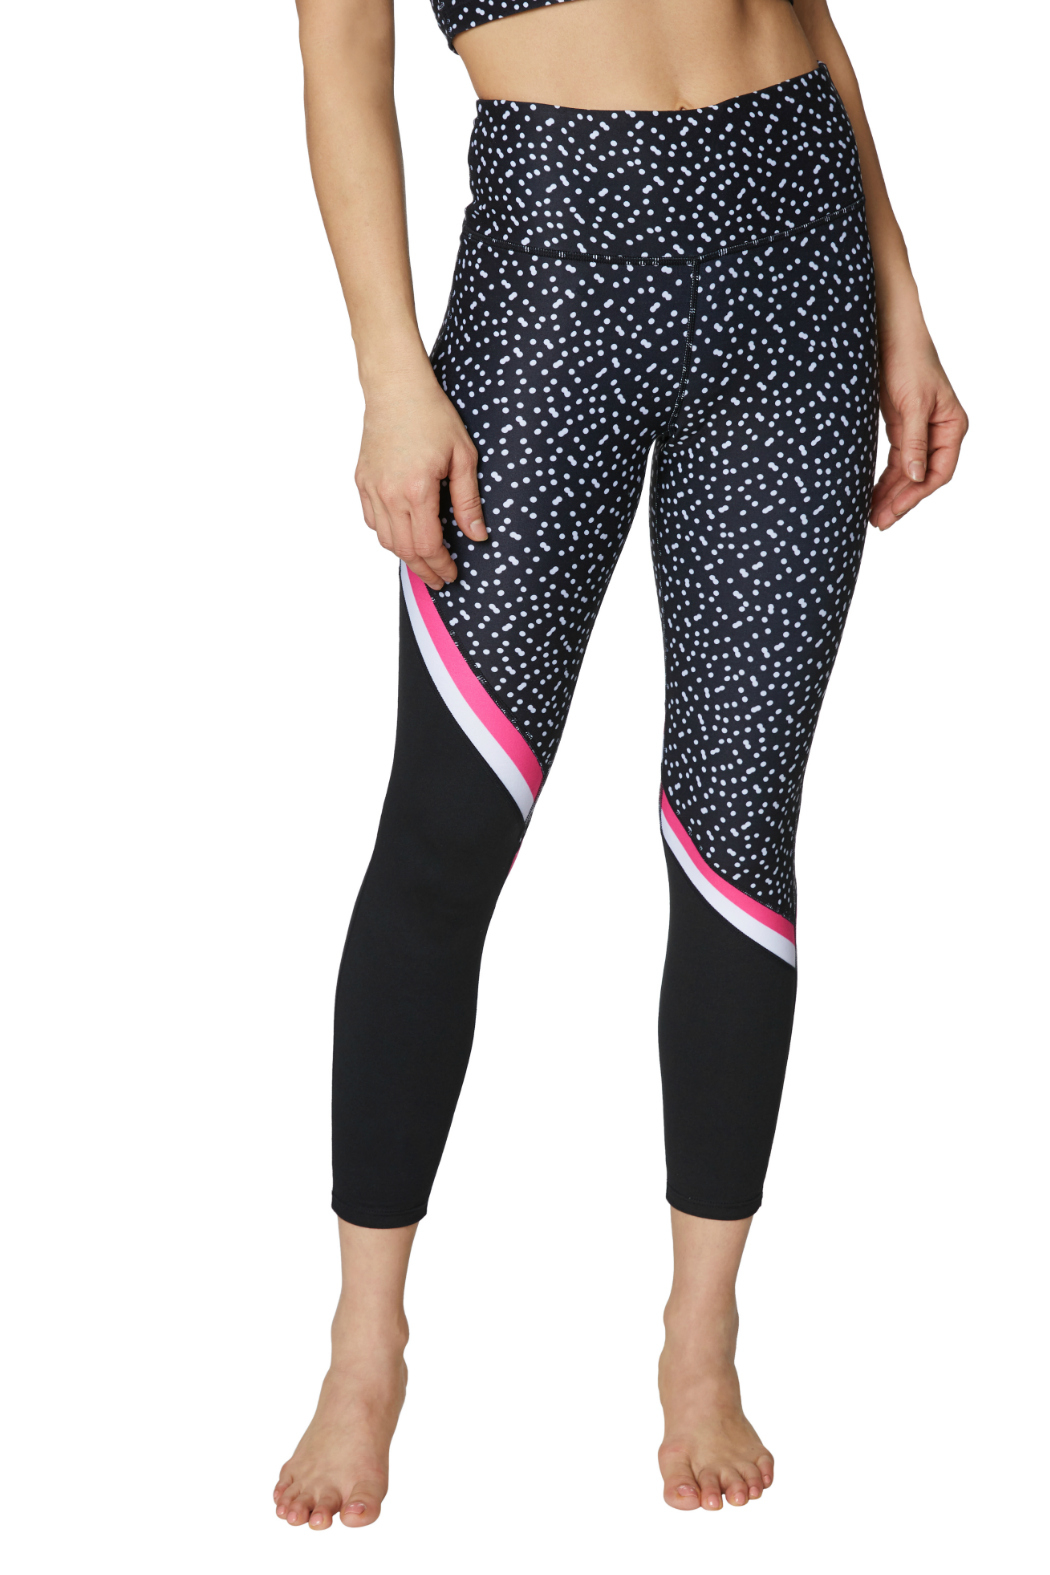 Betsey Johnson Diagonal Colorblock Printed 7/8 Legging - Front Cropped Image